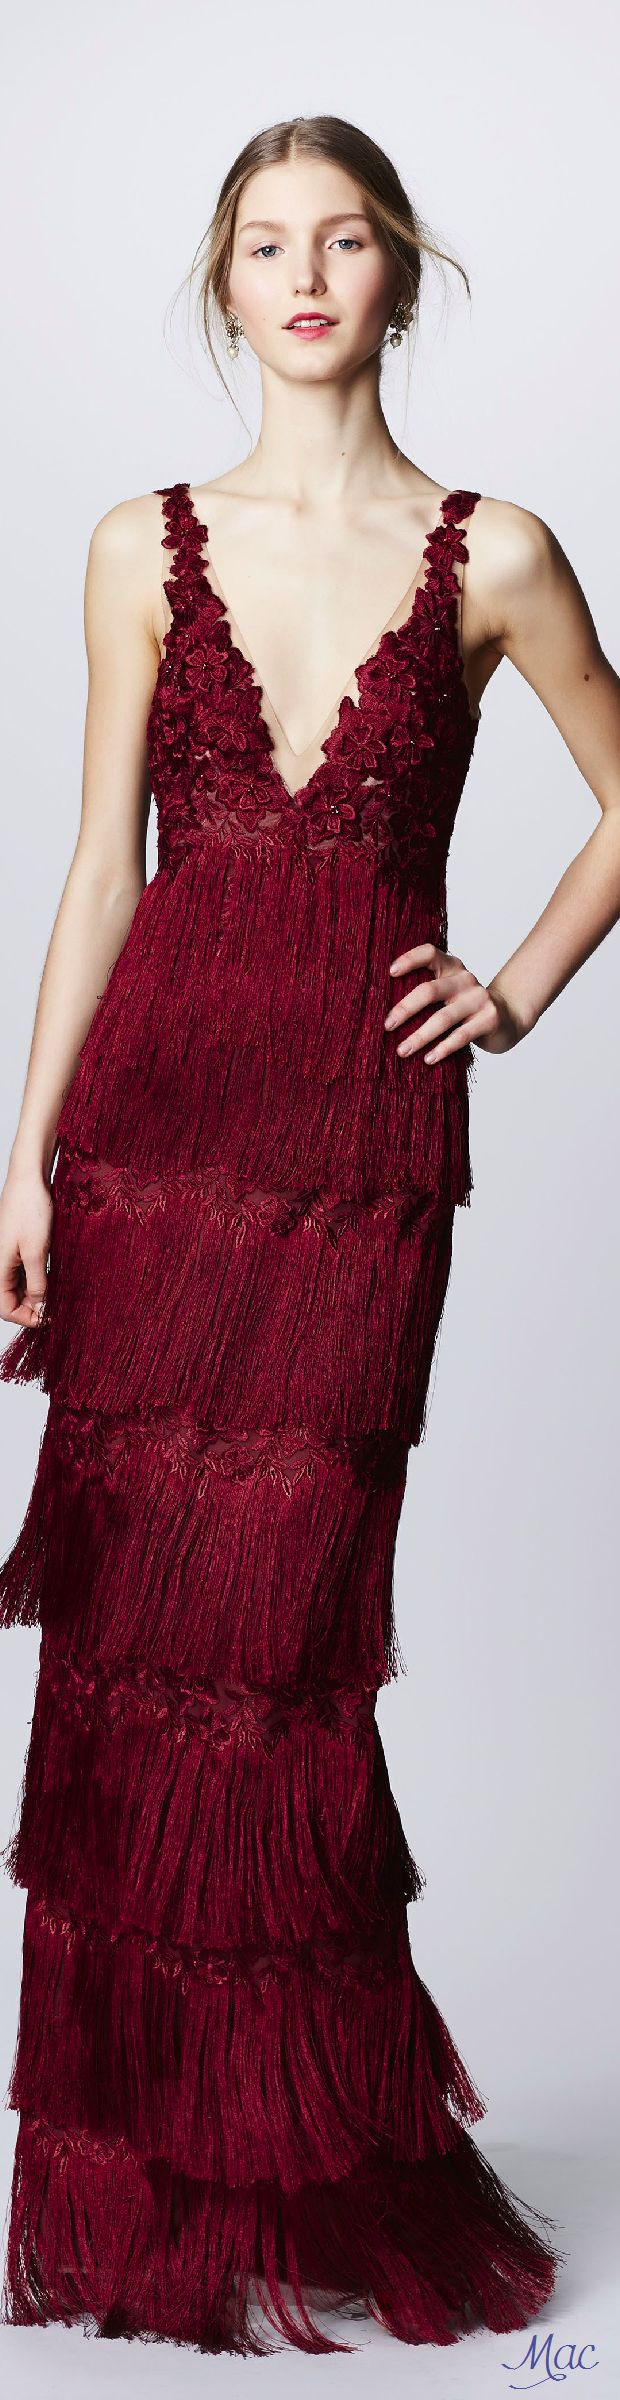 Fall 2016 Ready-to-Wear Marchesa Notte